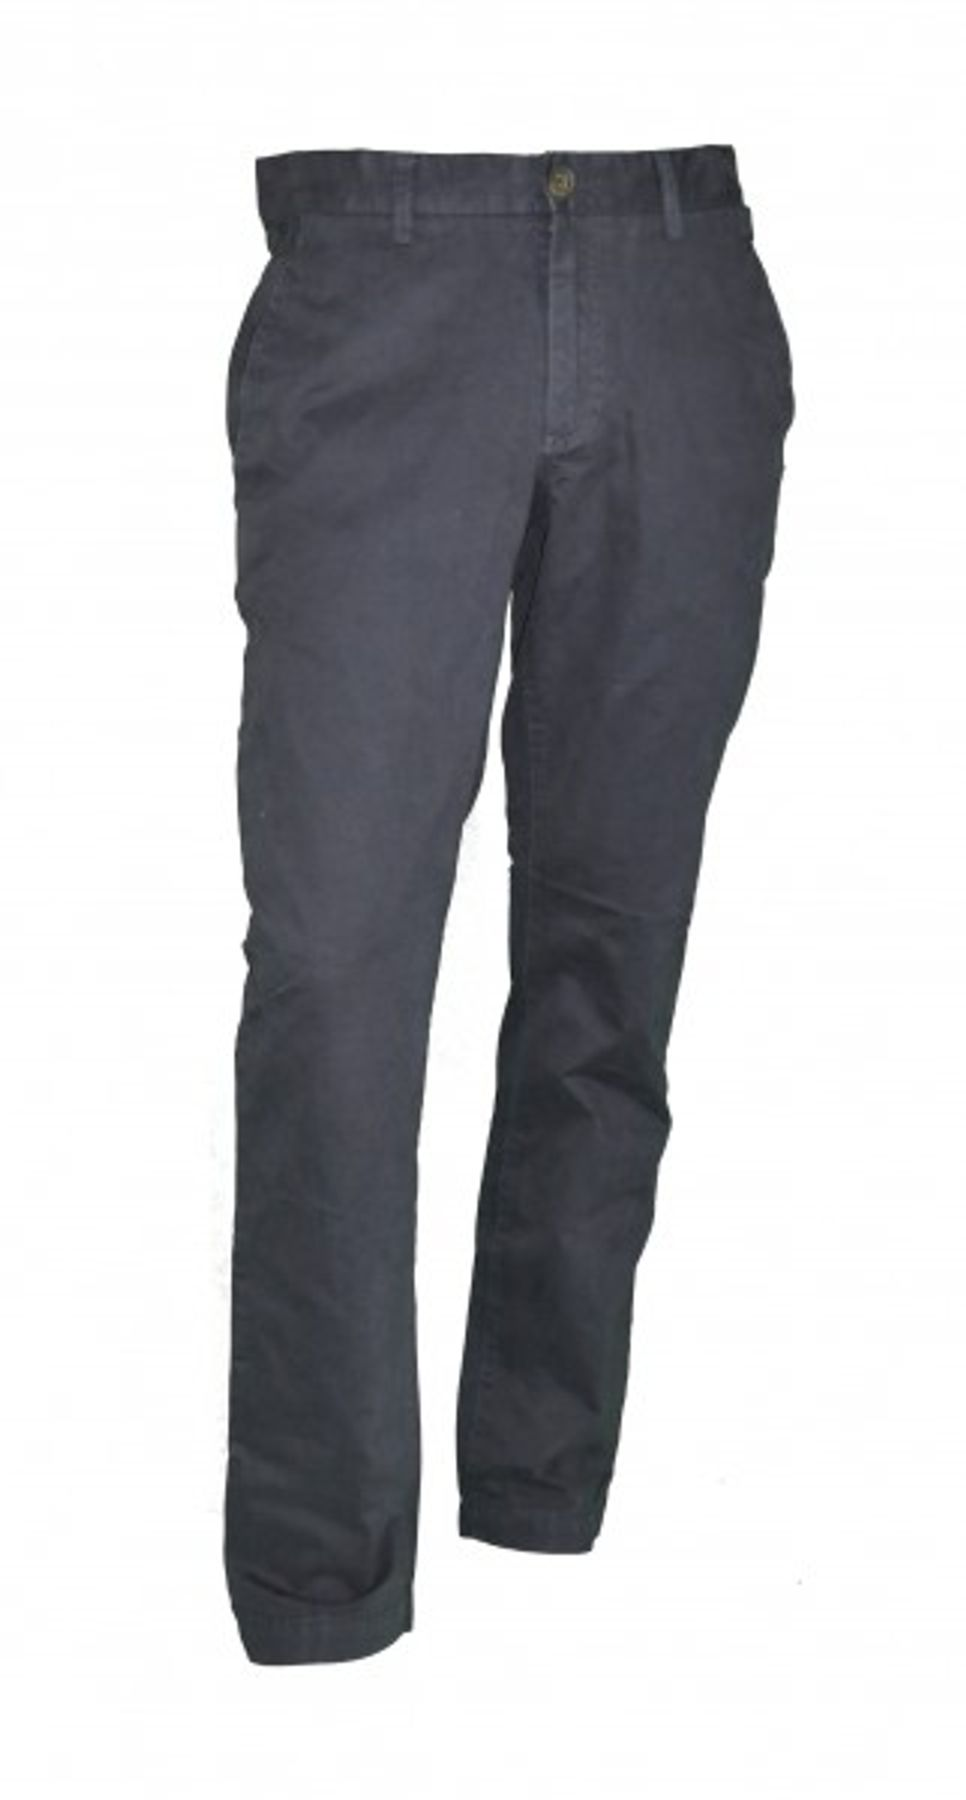 Modische Herren Chino Hose in Navy blau, MARKENWARE, (Art. 80056 2031 002-0800)